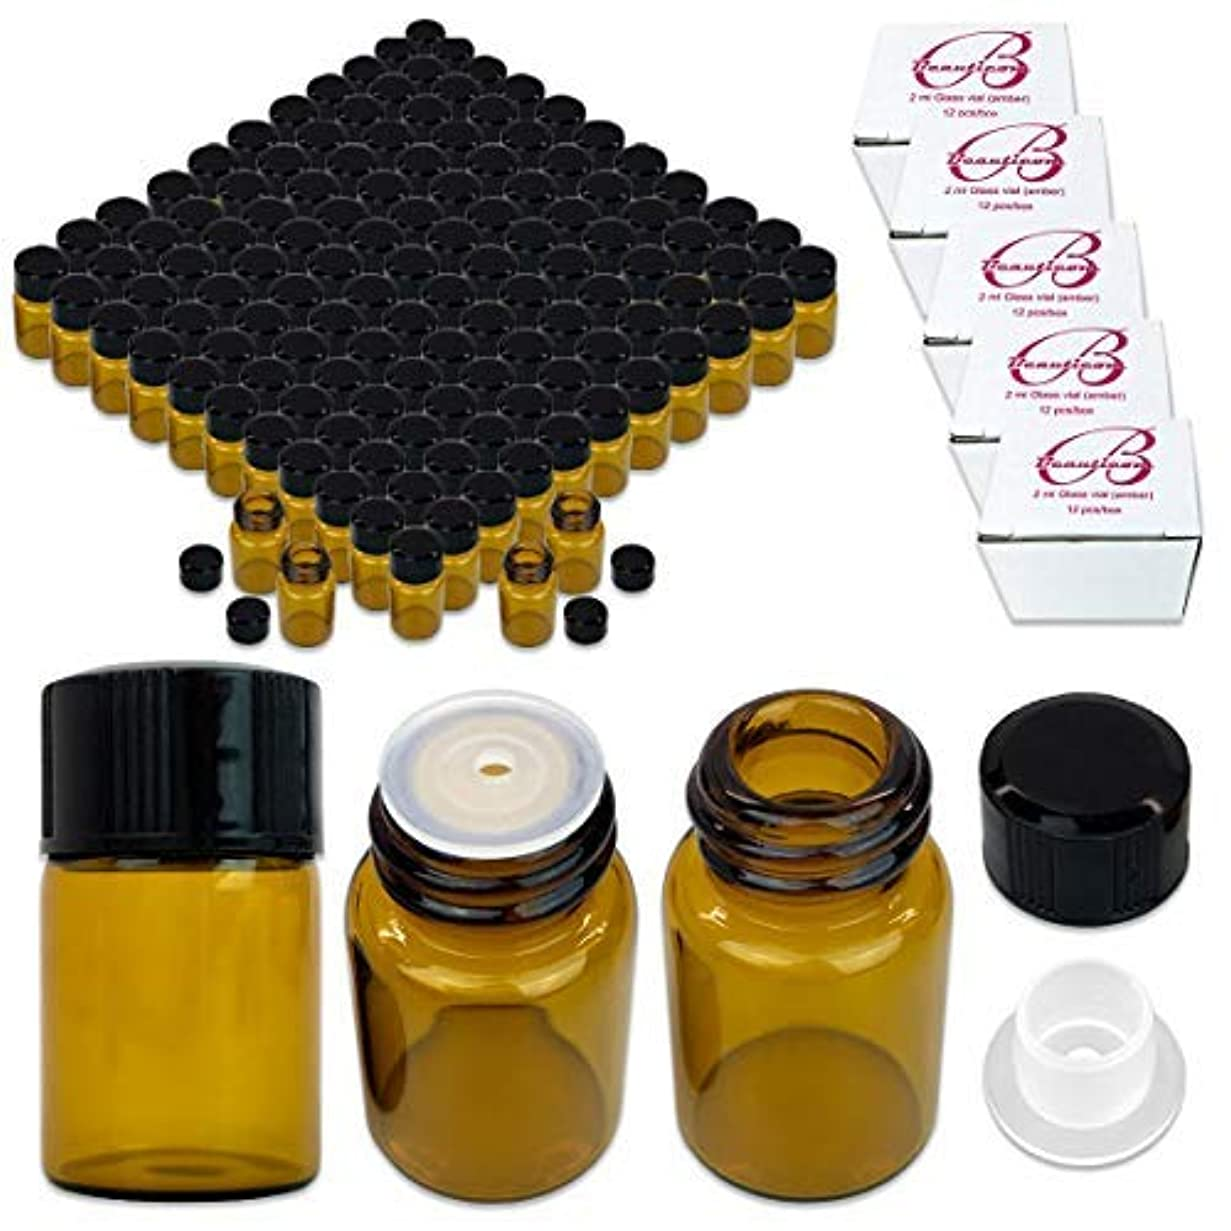 180 Packs Beauticom 2ML Amber Glass Vial for Essential Oils, Aromatherapy, Fragrance, Serums, Spritzes, with Orifice...